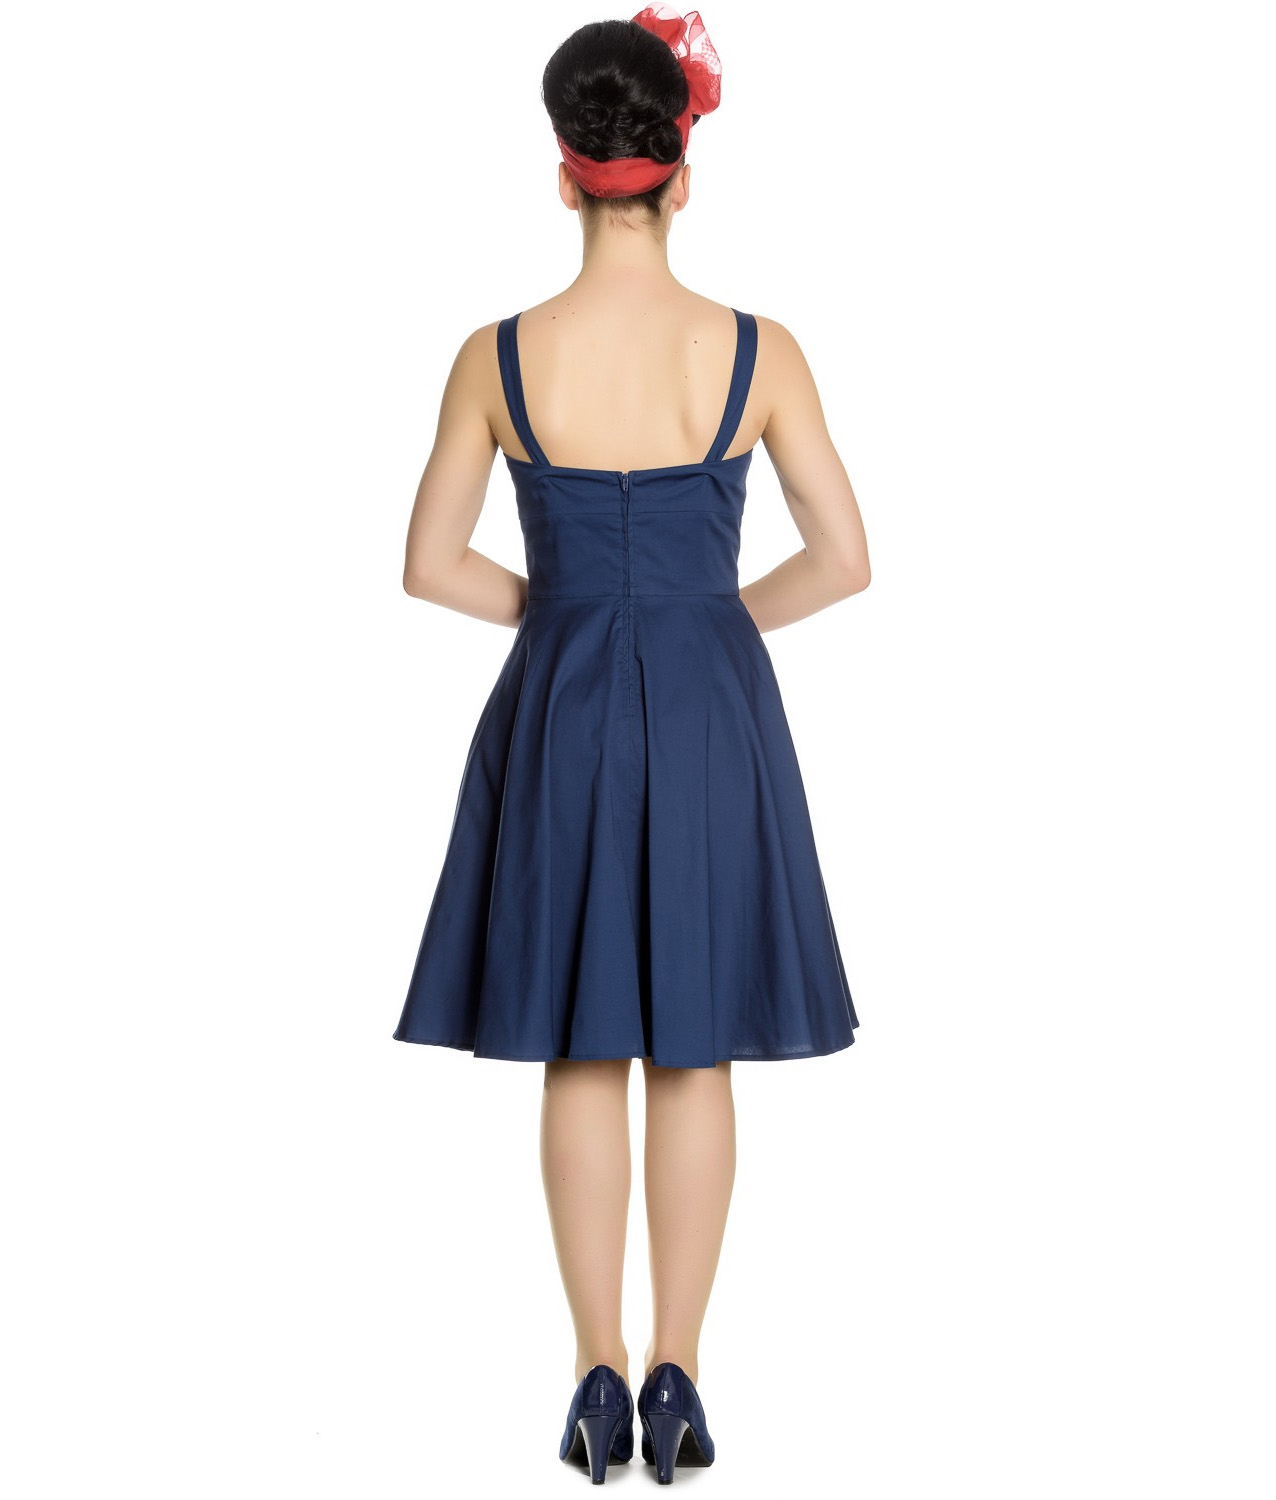 Hell-Bunny-Vintage-50s-Pin-Up-Dress-Navy-Blue-SELA-Nautical-Anchors-All-Sizes thumbnail 13